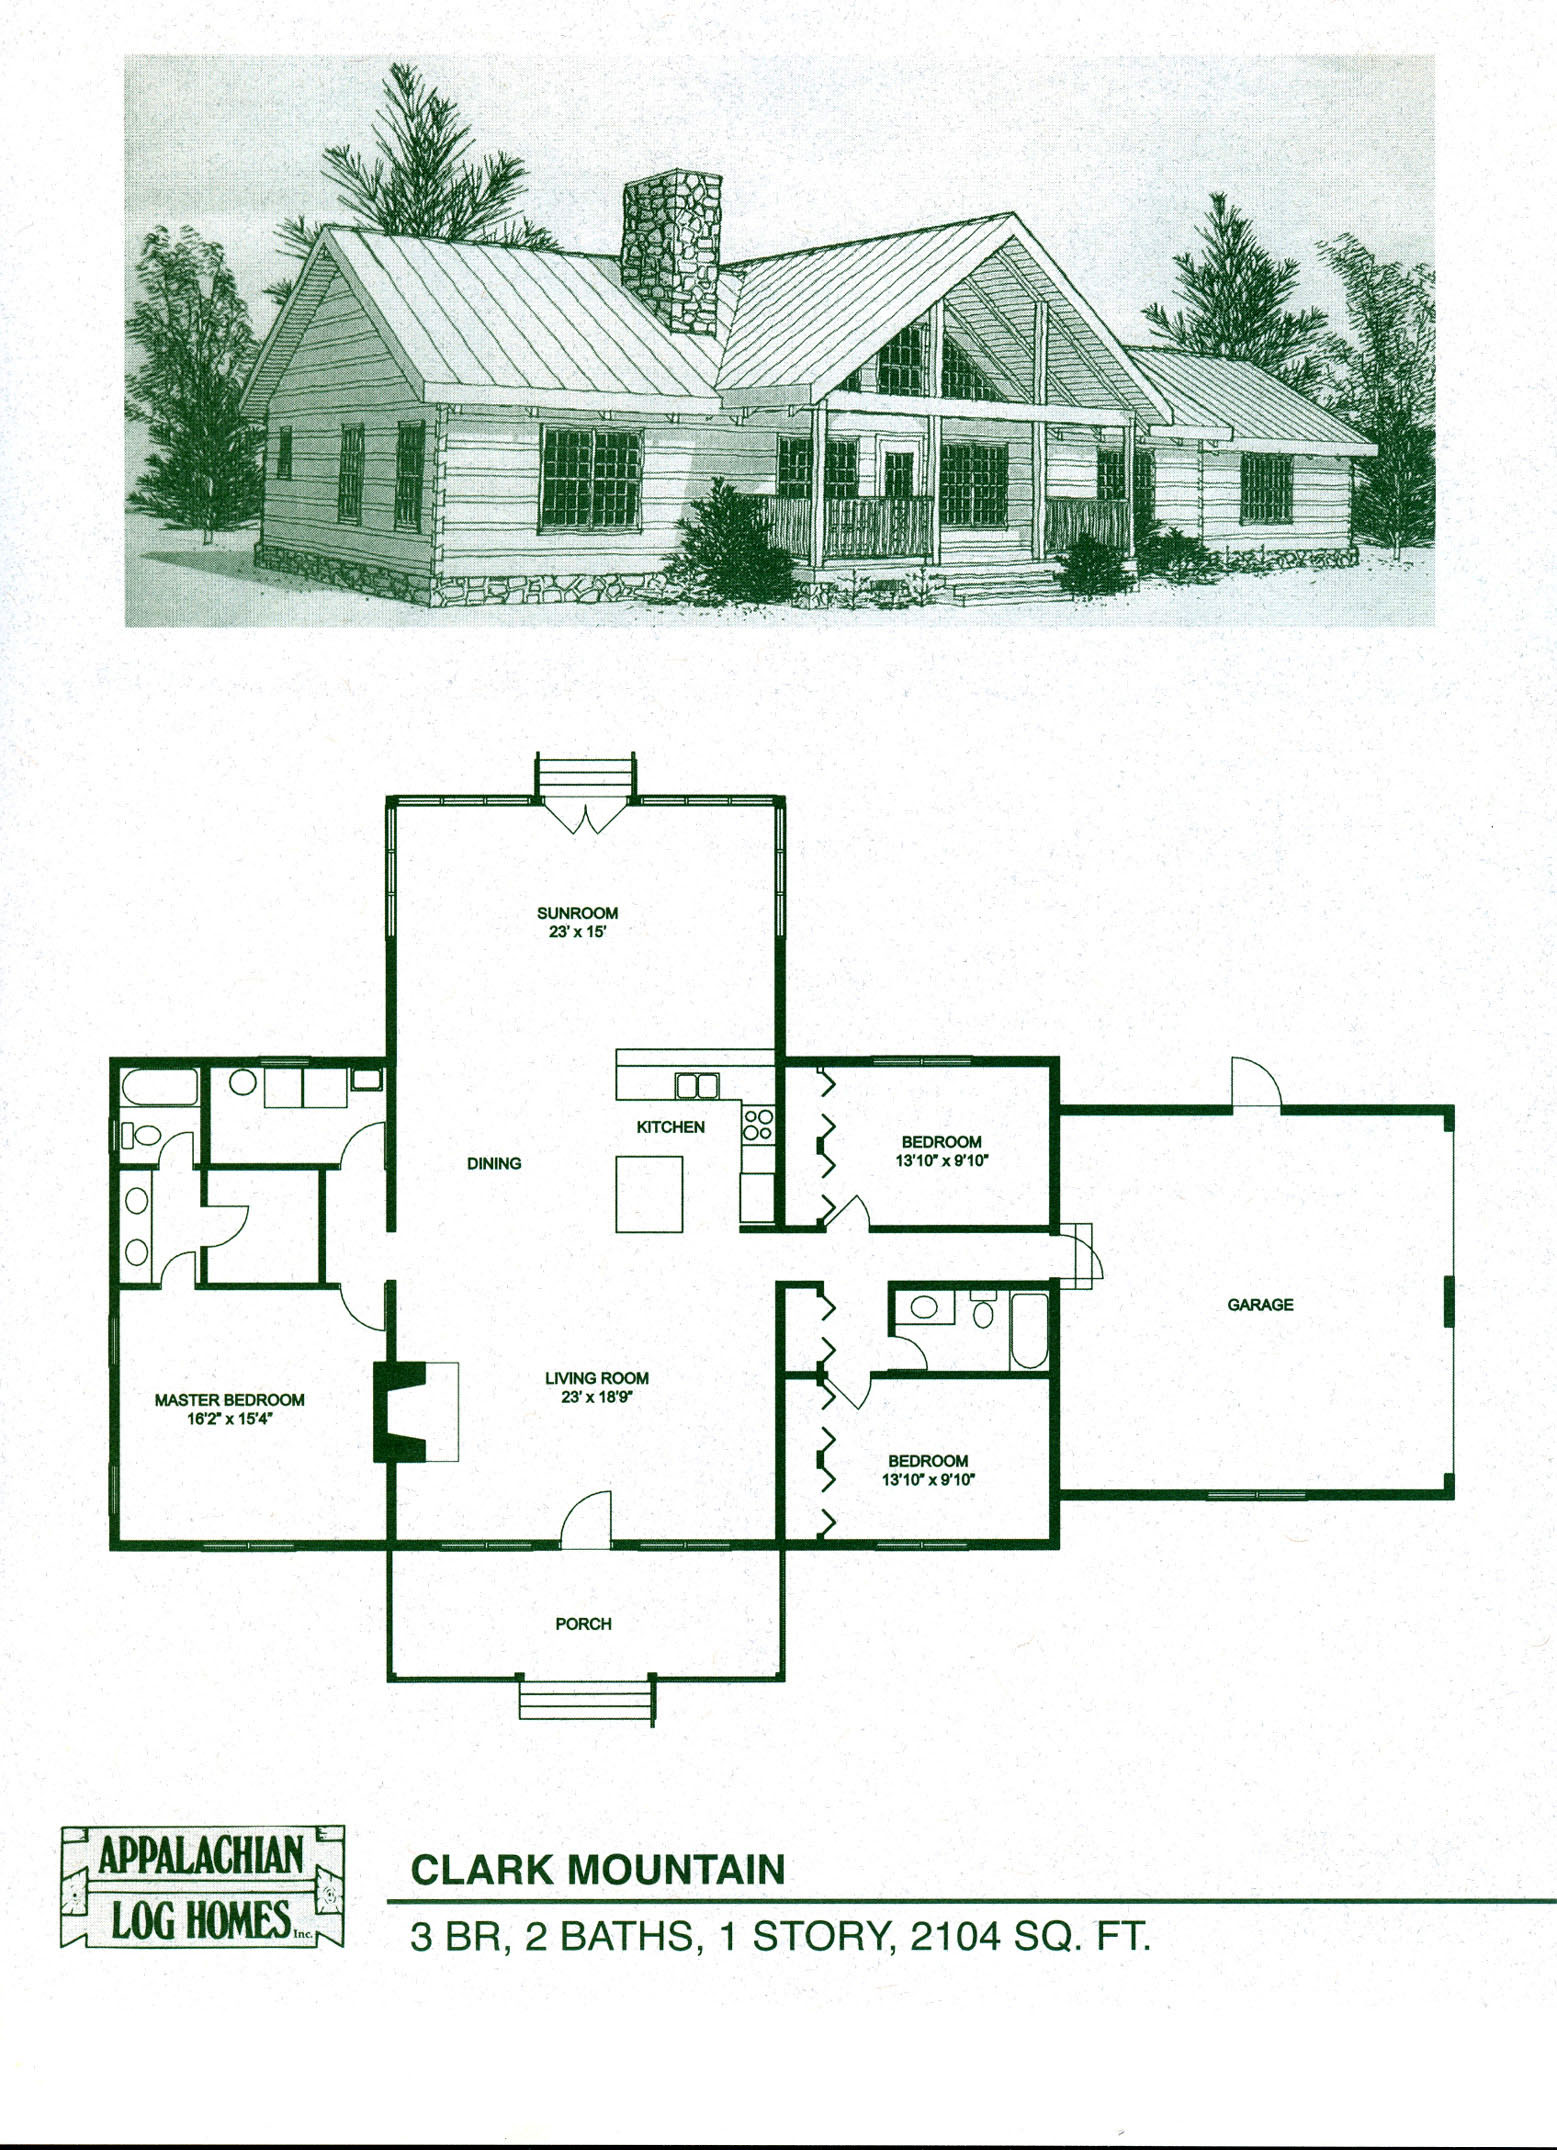 Log cabin loft 2 bedroom log cabin homes floor plans log for 2 bedroom cabin plans with loft